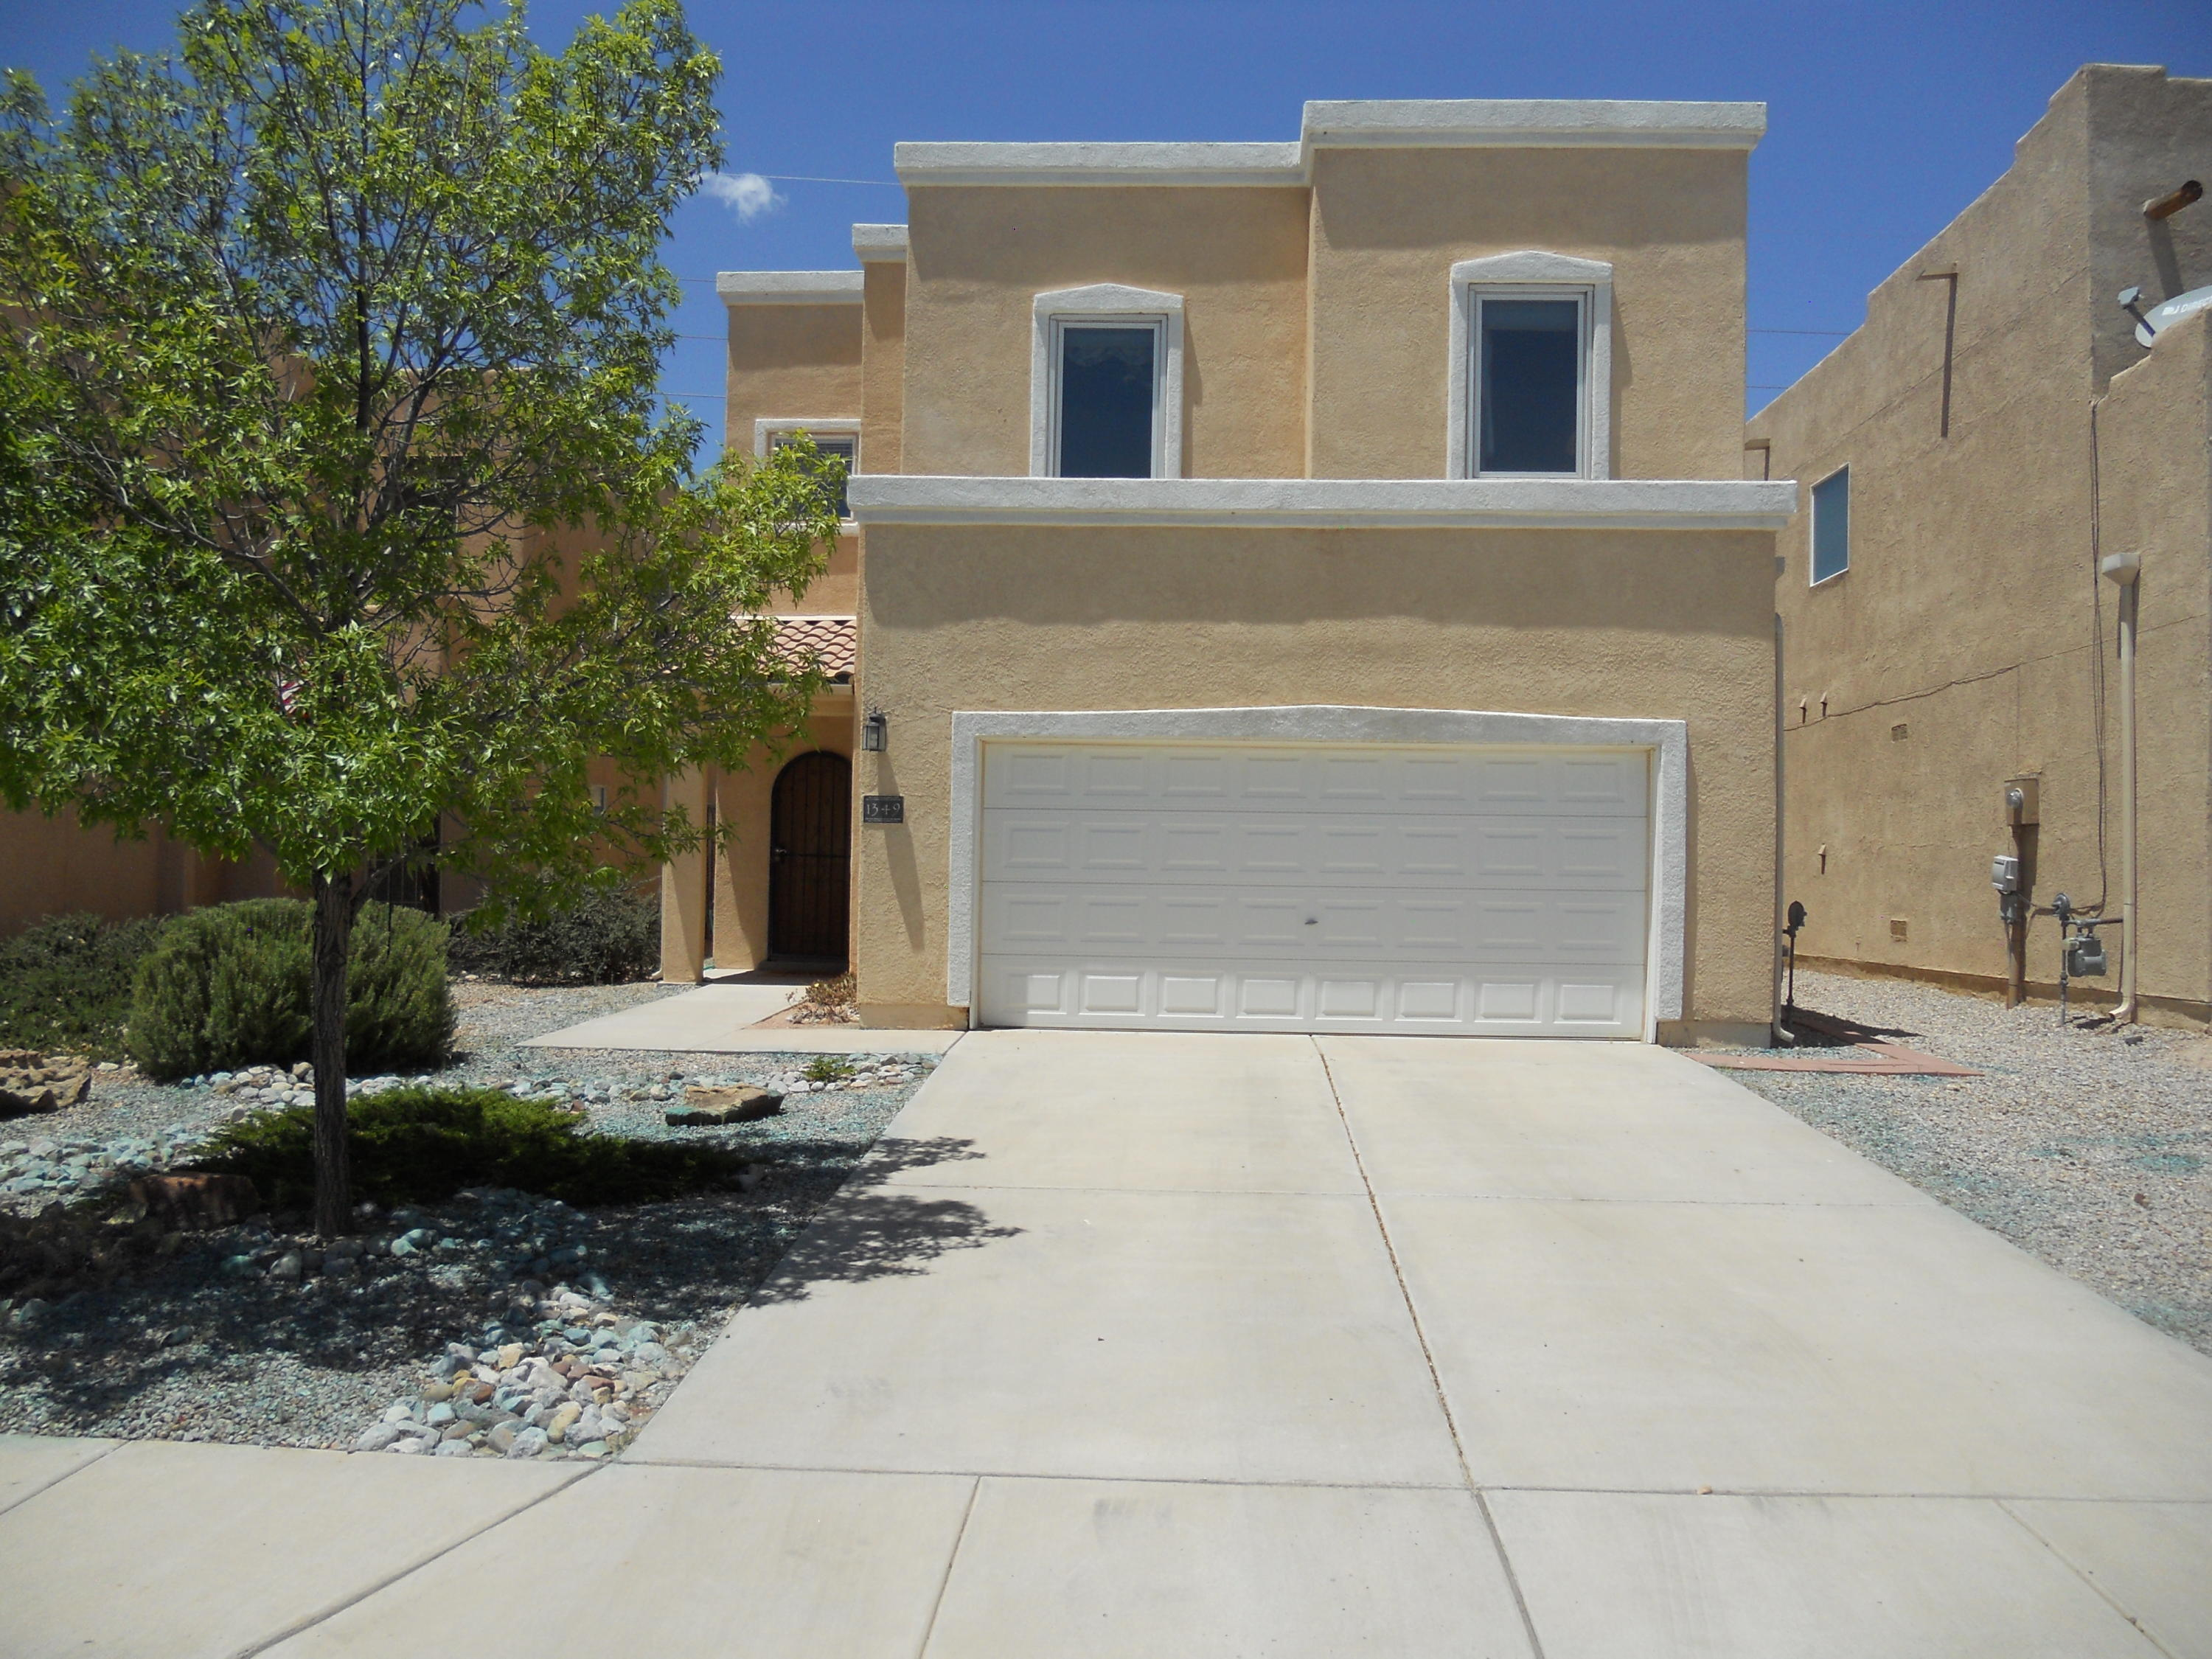 Location, Location, Location! This former CENTEX Model Home is in southern Rio Rancho close to local businesses and restaurants and the Village of Corrales. It has NO HOA but does have many interior upgrades including ceiling fans, Corian countertops, built-in double oven and microwave, and pre-wired speakers in Great Room.Recent improvements include new roof in Feb., 2020, 4 Pella windows in 2012, and adjustable hot water timer.  Master Suite is on ground floor away from upstairs bedrooms. It has a large walk-in closet and separate shower/tub in lg bathroom.   All appliances stay! Interior decorations and furniture are negotiable (in exchange for Buyer's  donation to Seller's favorite Charity).  Don't lose out on this GREAT home!Seller requires 24 hr to respond to Offer.